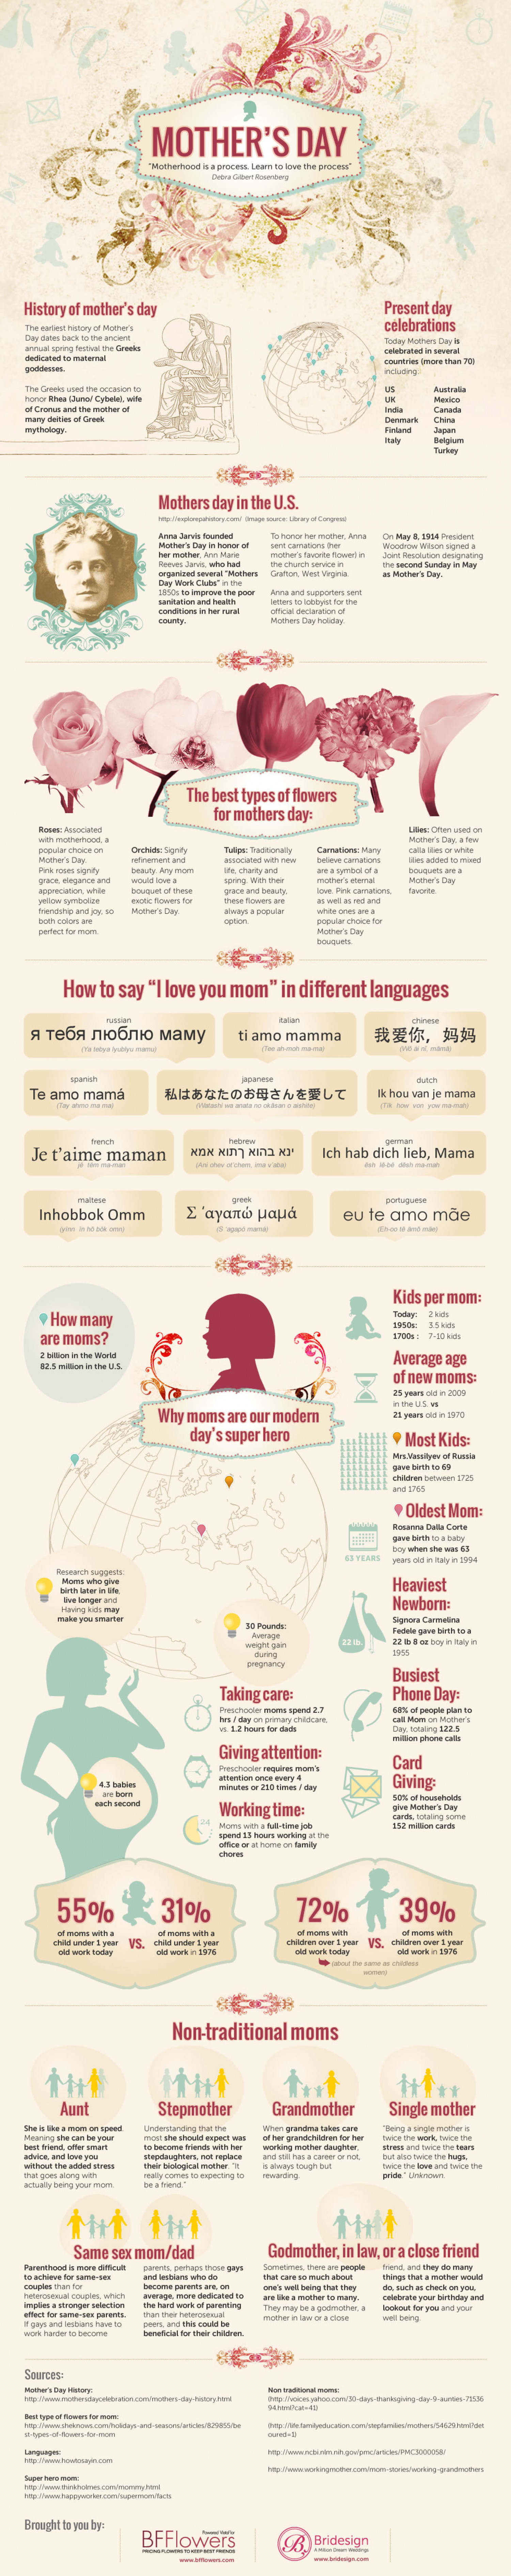 Why We Celebrate Mother's Day Infographic